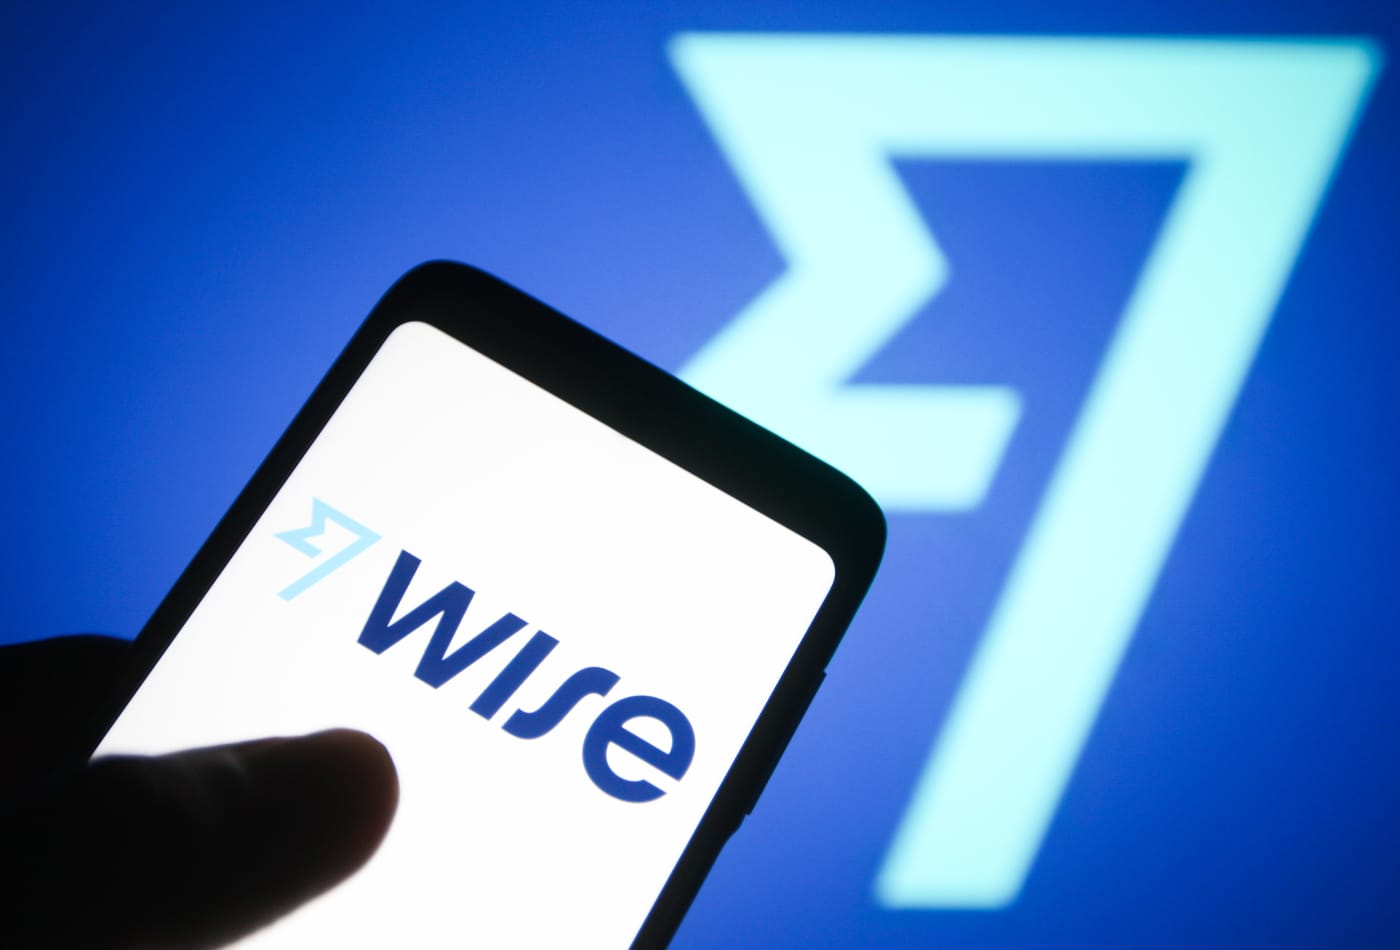 Fintech firm Wise launches feature that lets users spend money invested in stocks